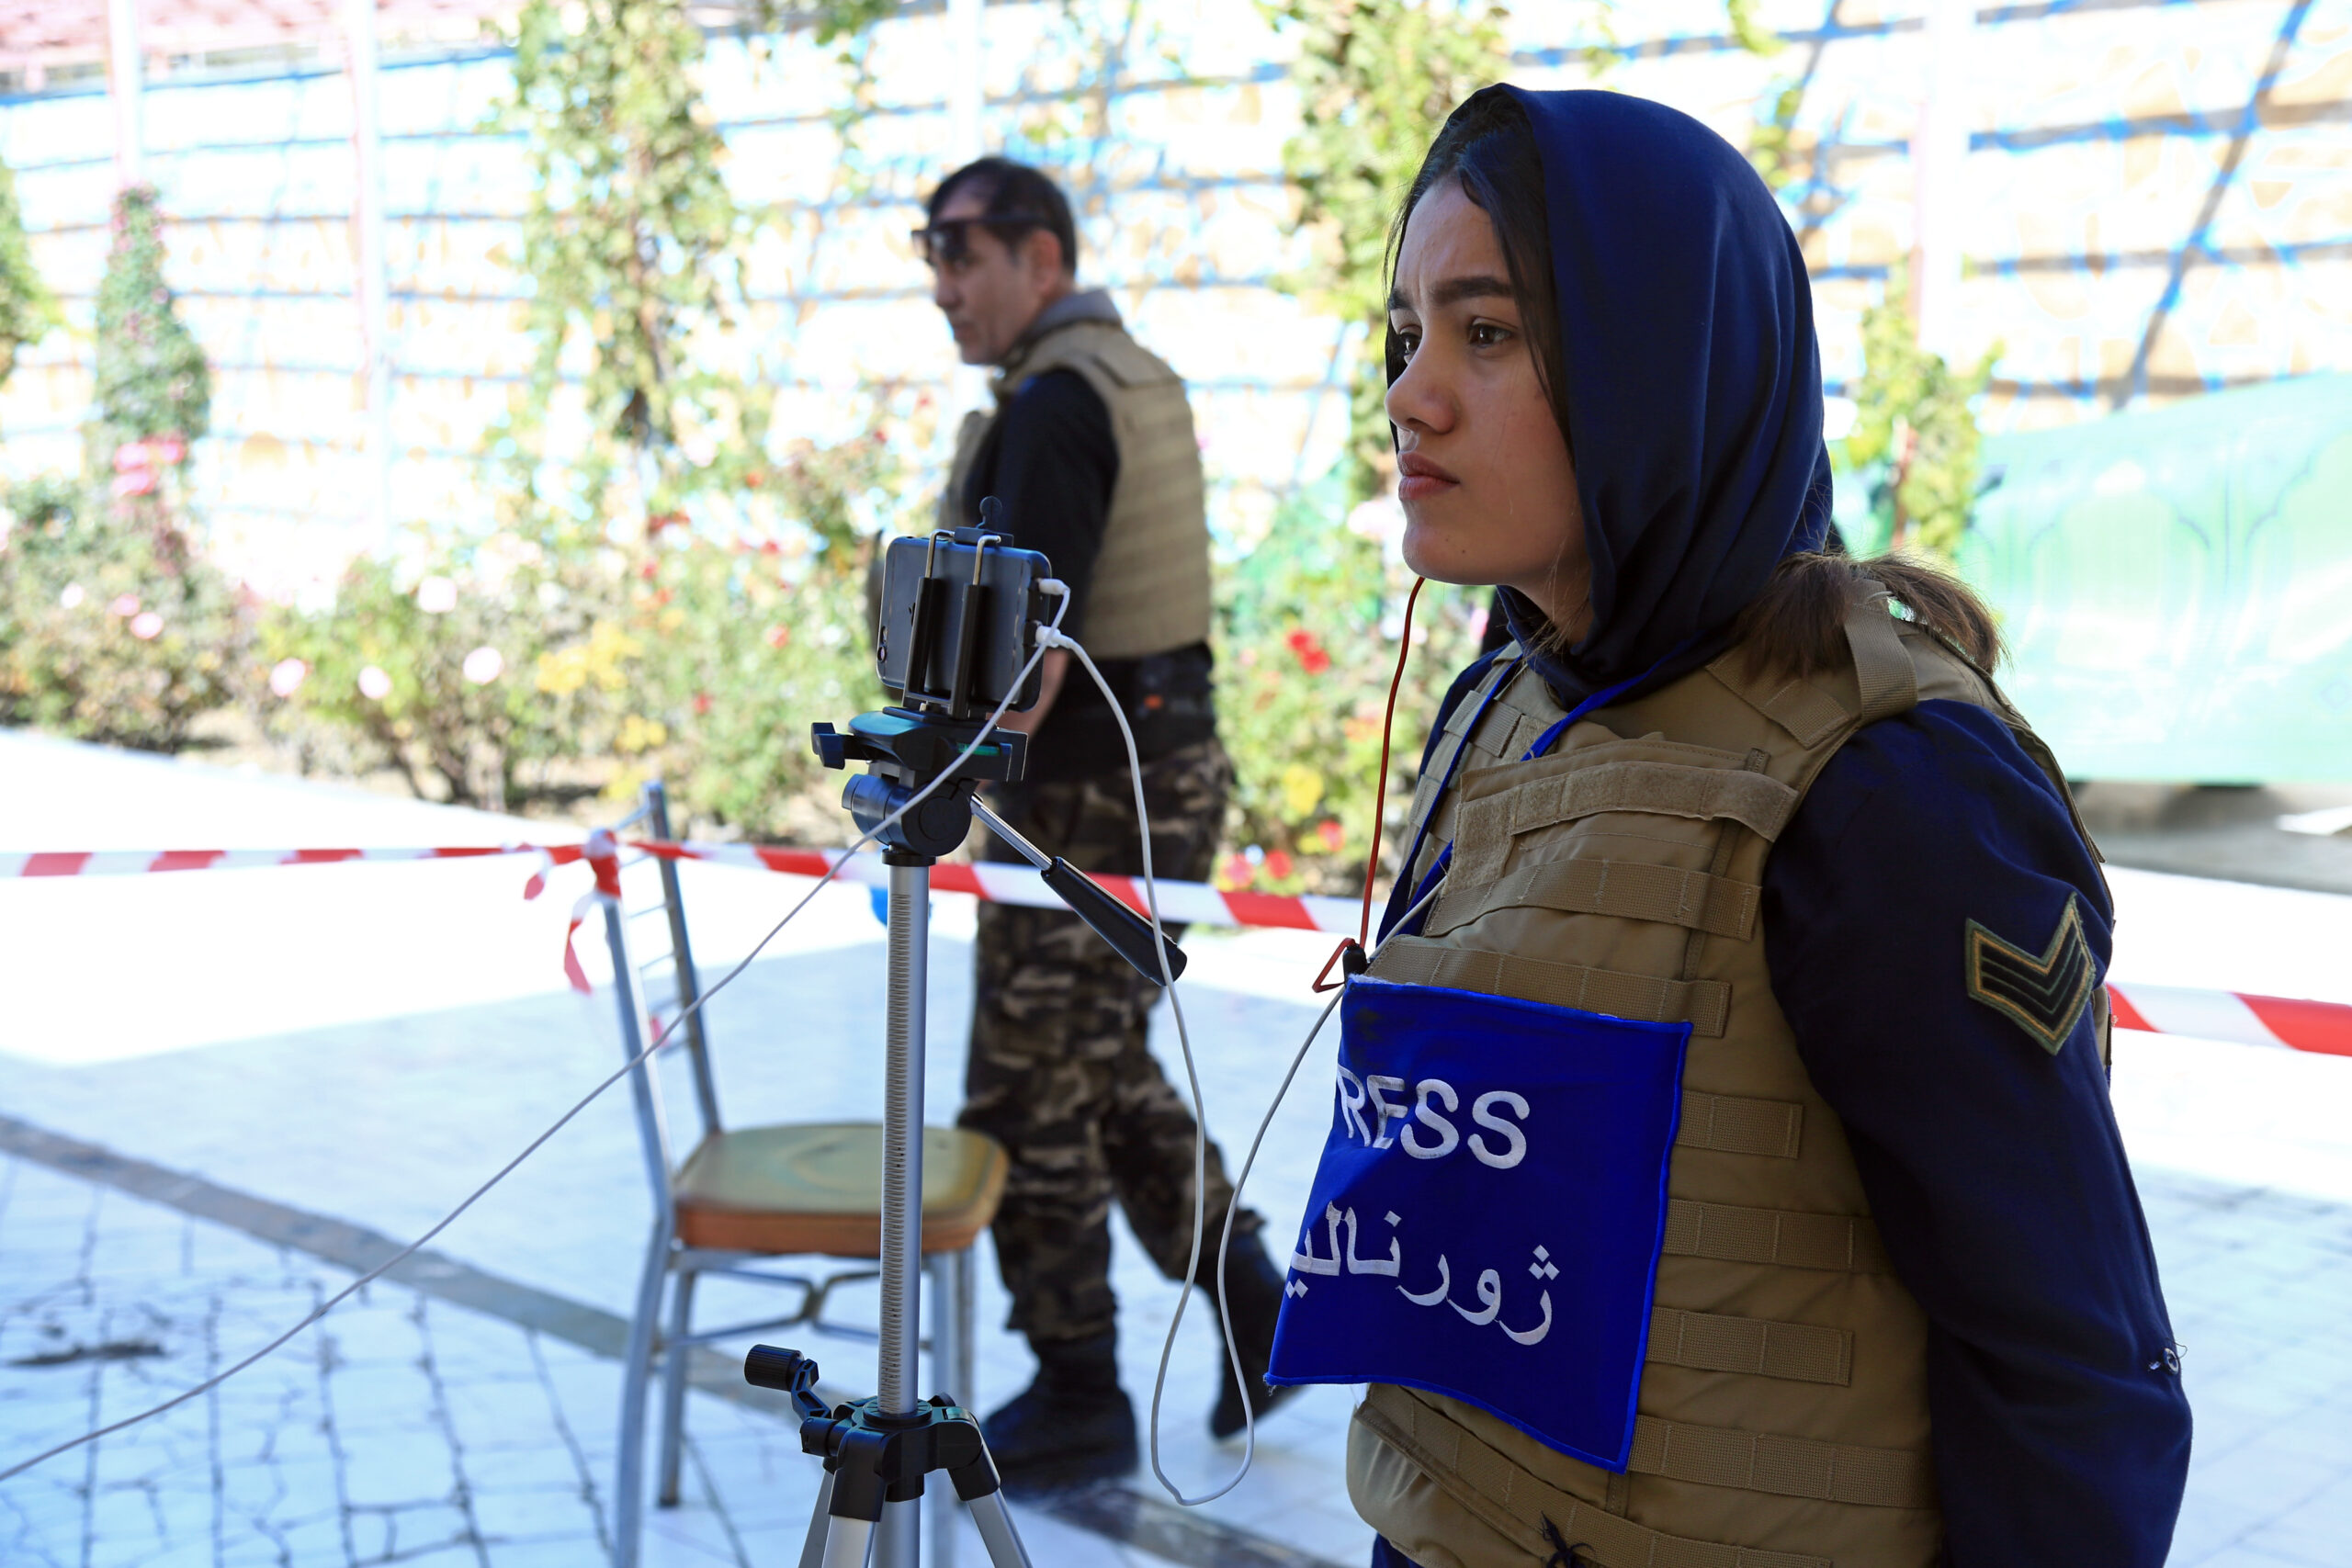 woman wearing a flak jacket with Press written on the torso in English and Arabic